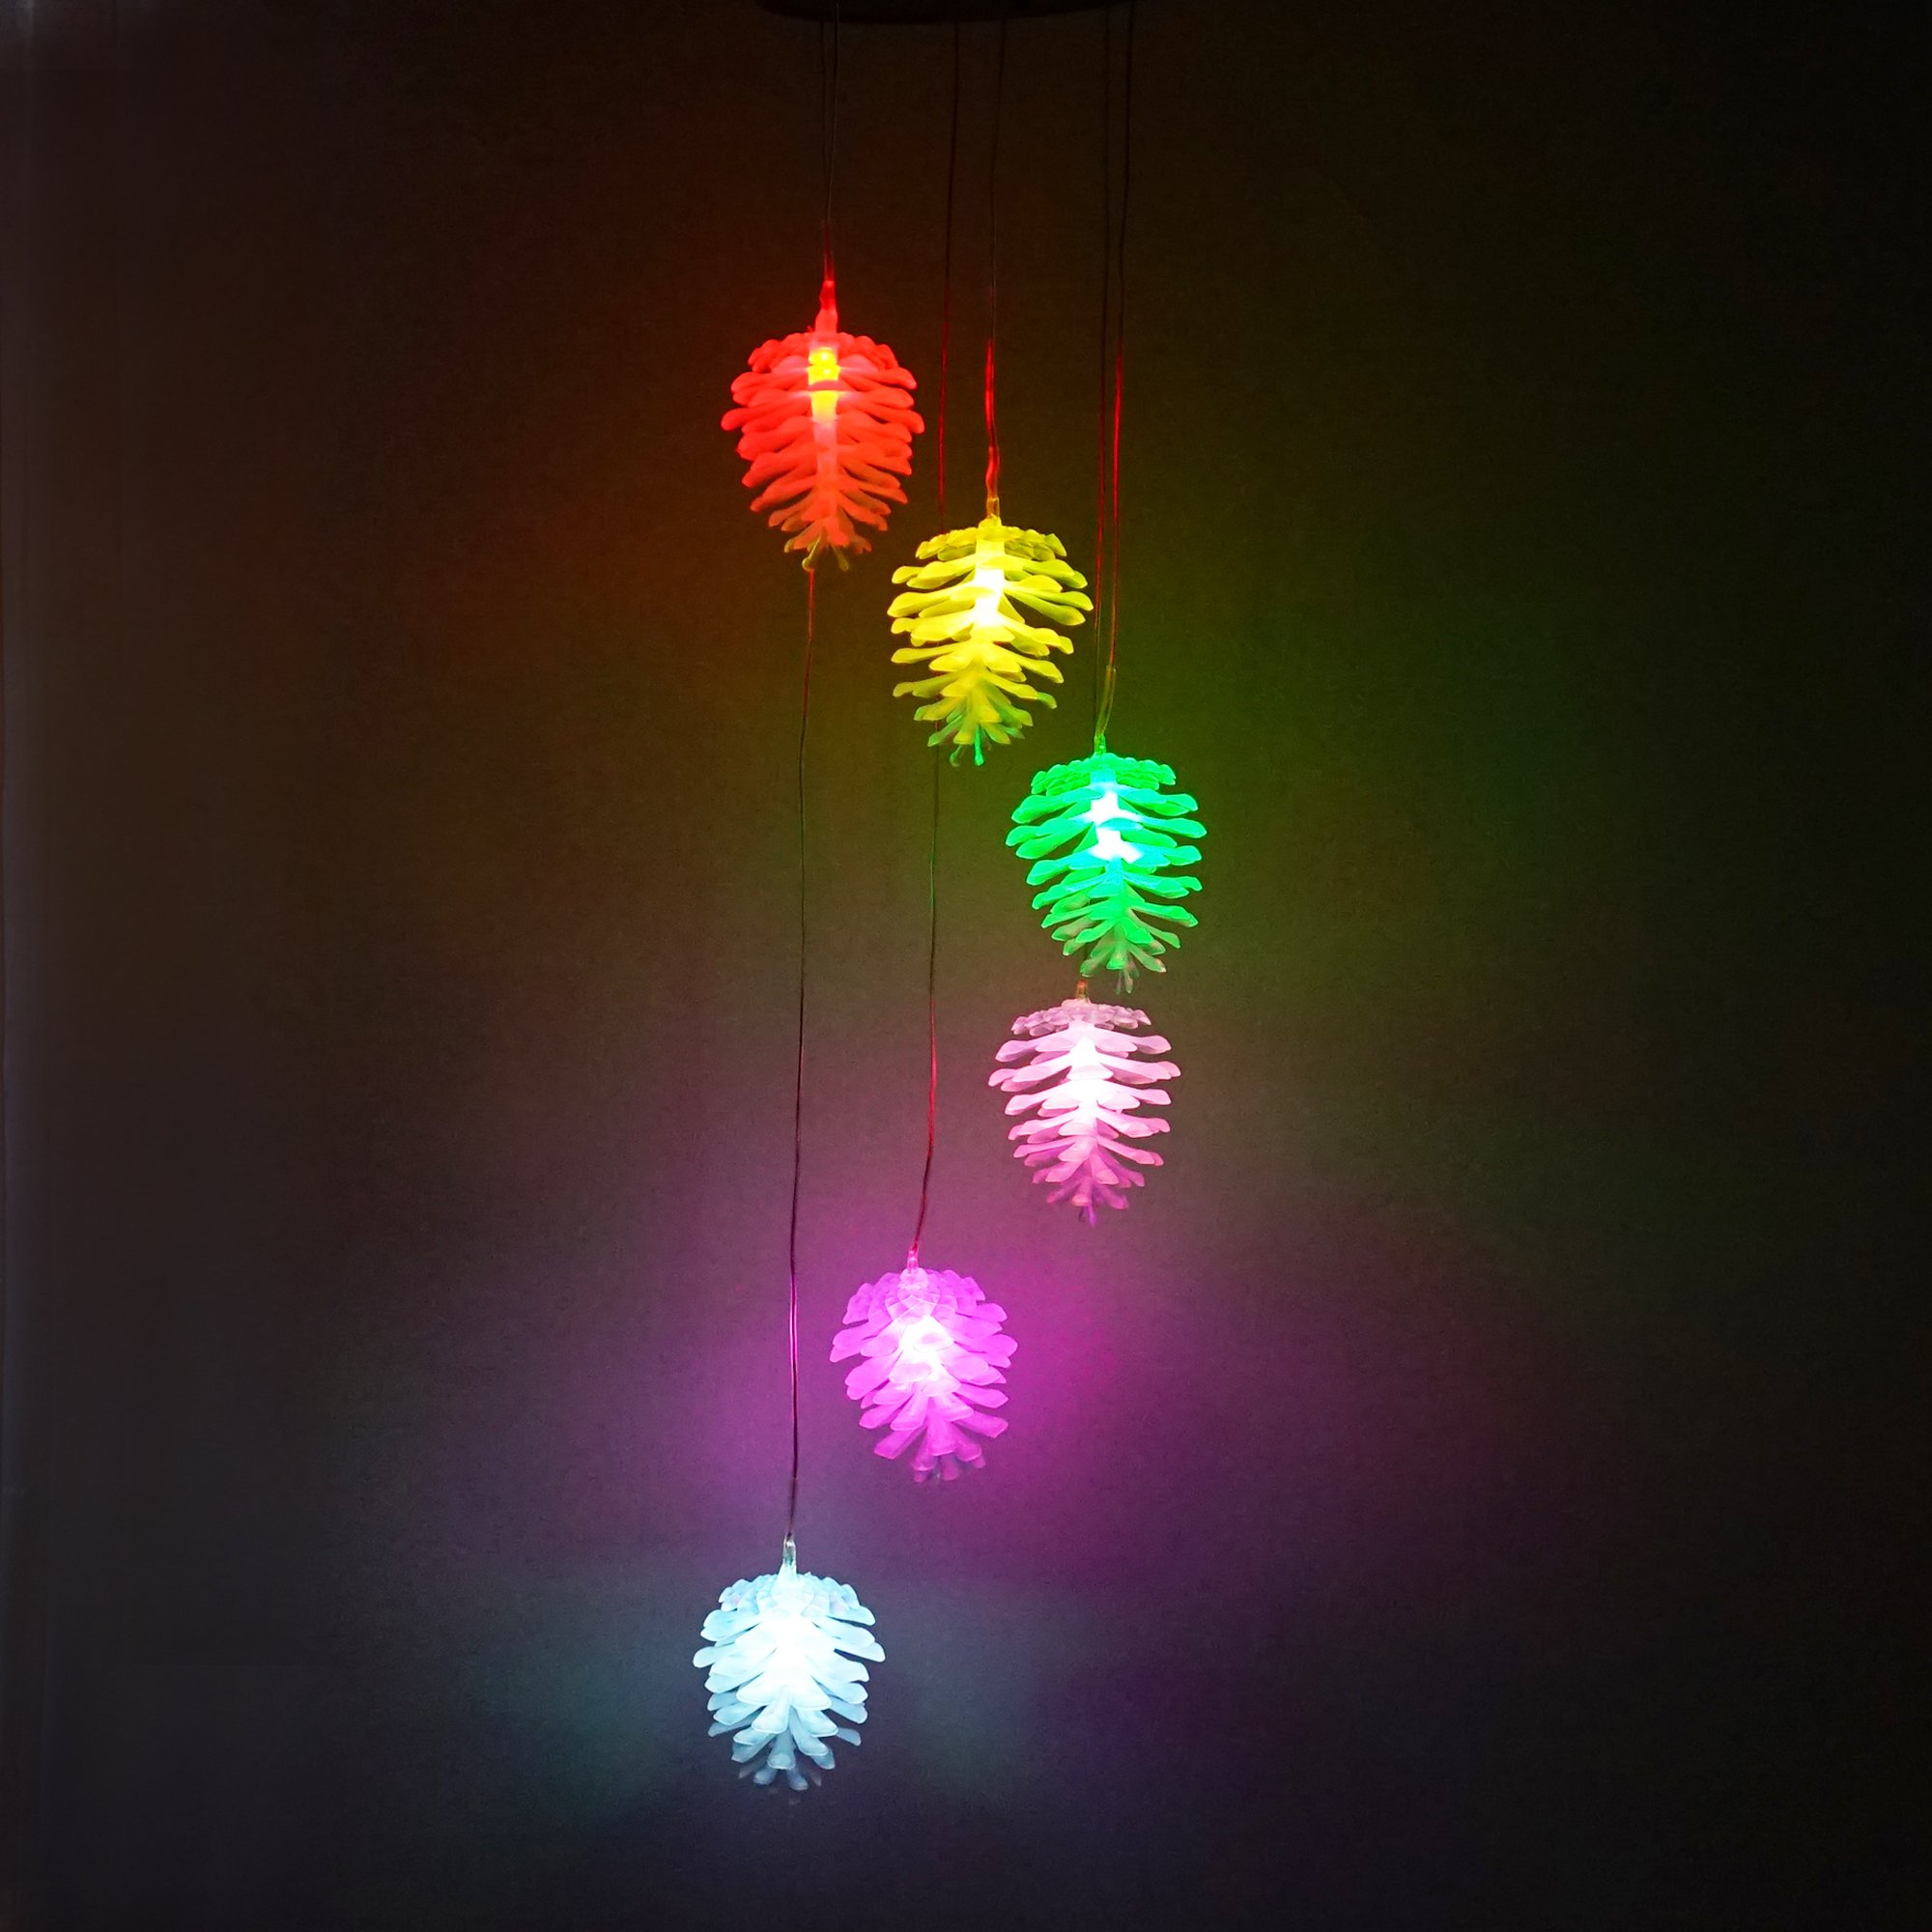 Color Changing Solar Power Wind Spinner Mobiles Light for Home Garden Patio Lawn Landscape Pond Pool Yard Decor, Pine Cones LED Night Light Hanging Lamp (Pine Cones) by Yeyo